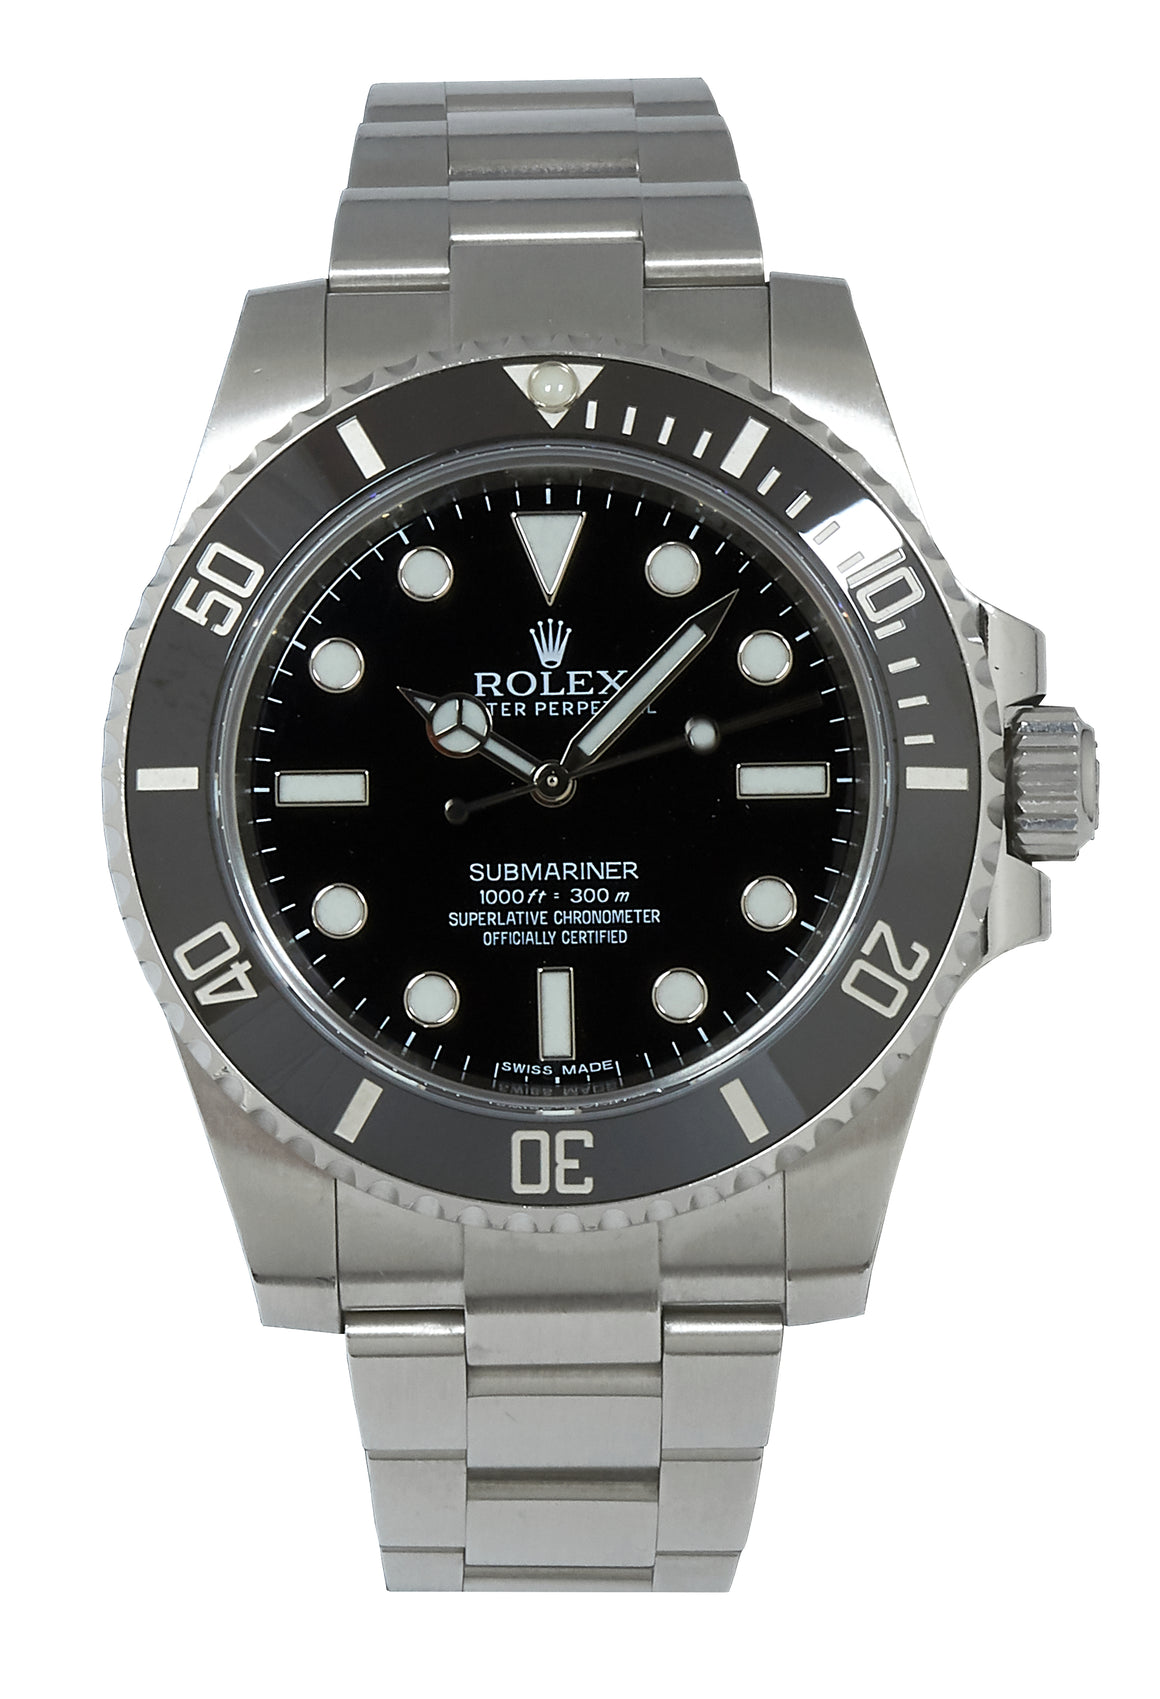 Rolex Submariner (No Date), Ref: 114060